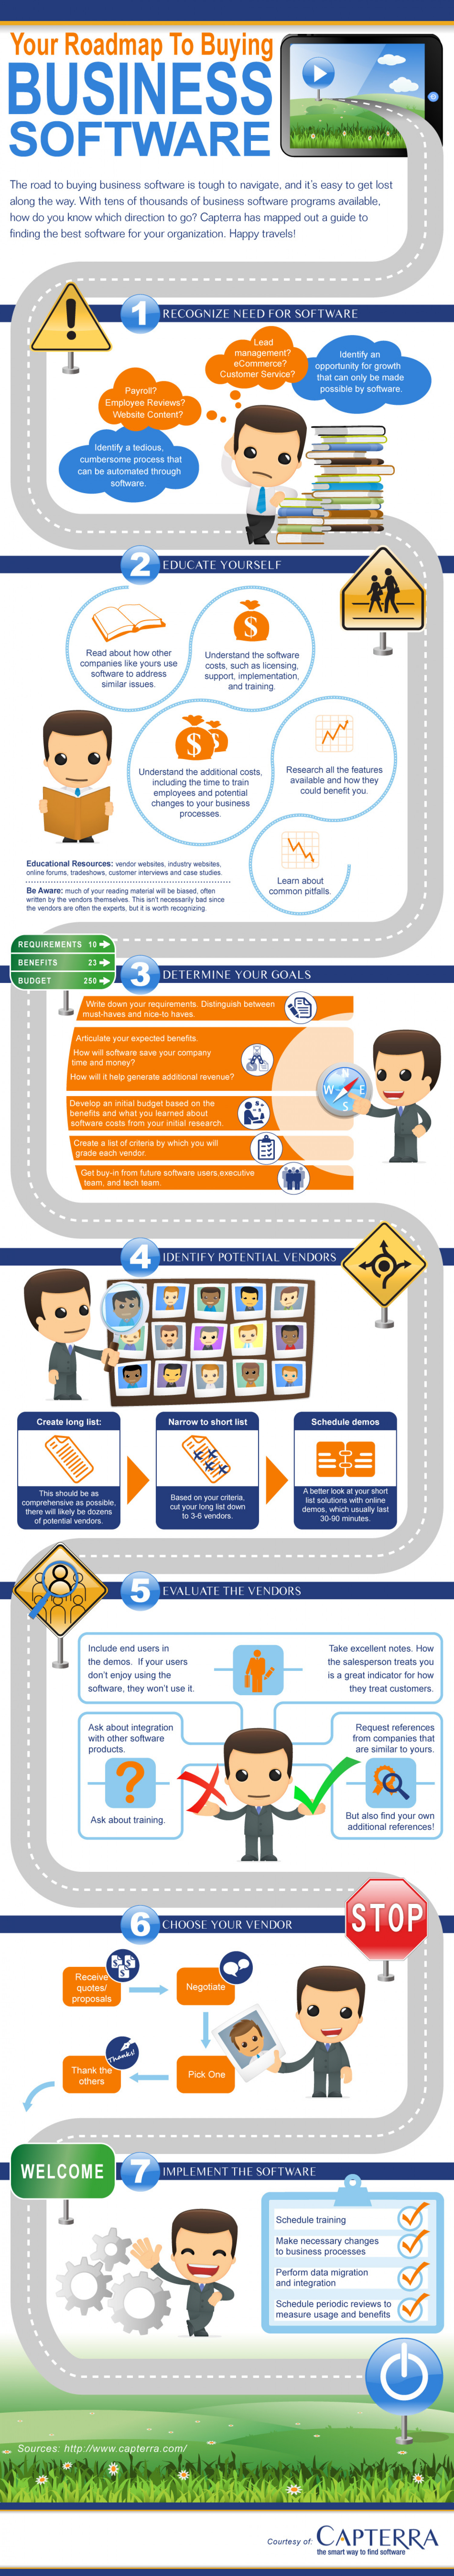 Roadmap to Buying Business Software Infographic